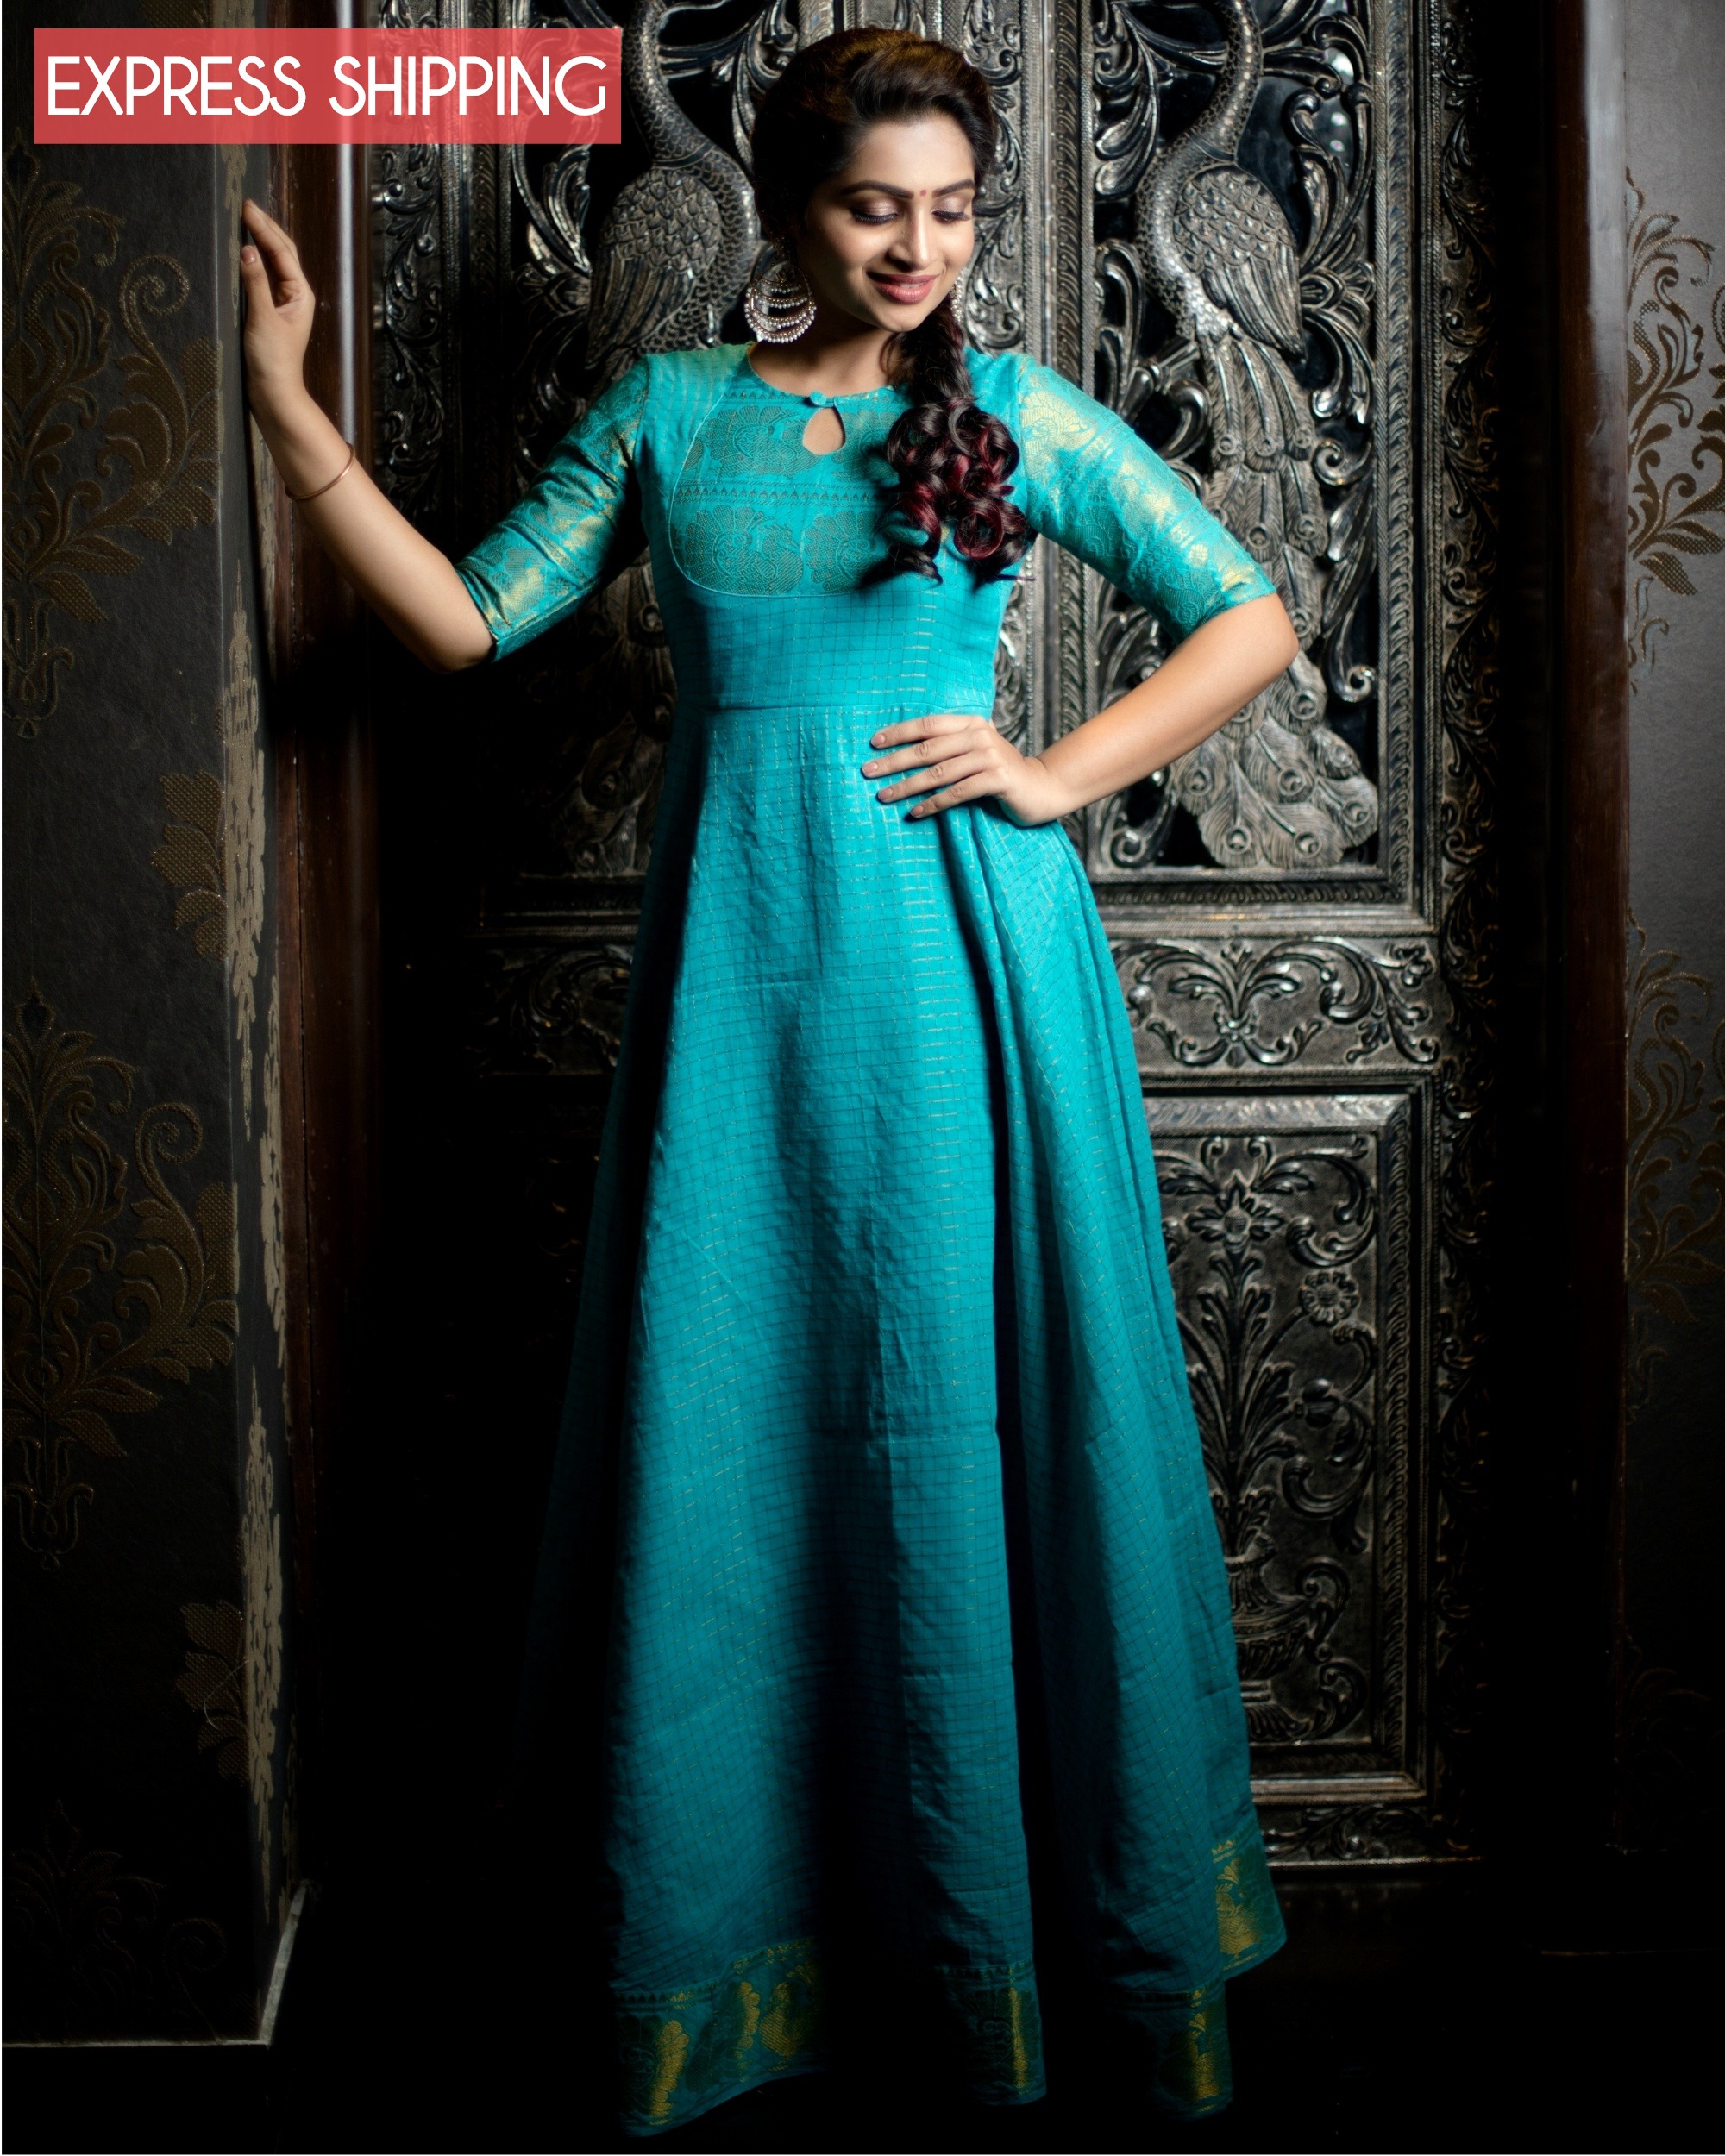 Turquoise and gold madurai cotton maxi